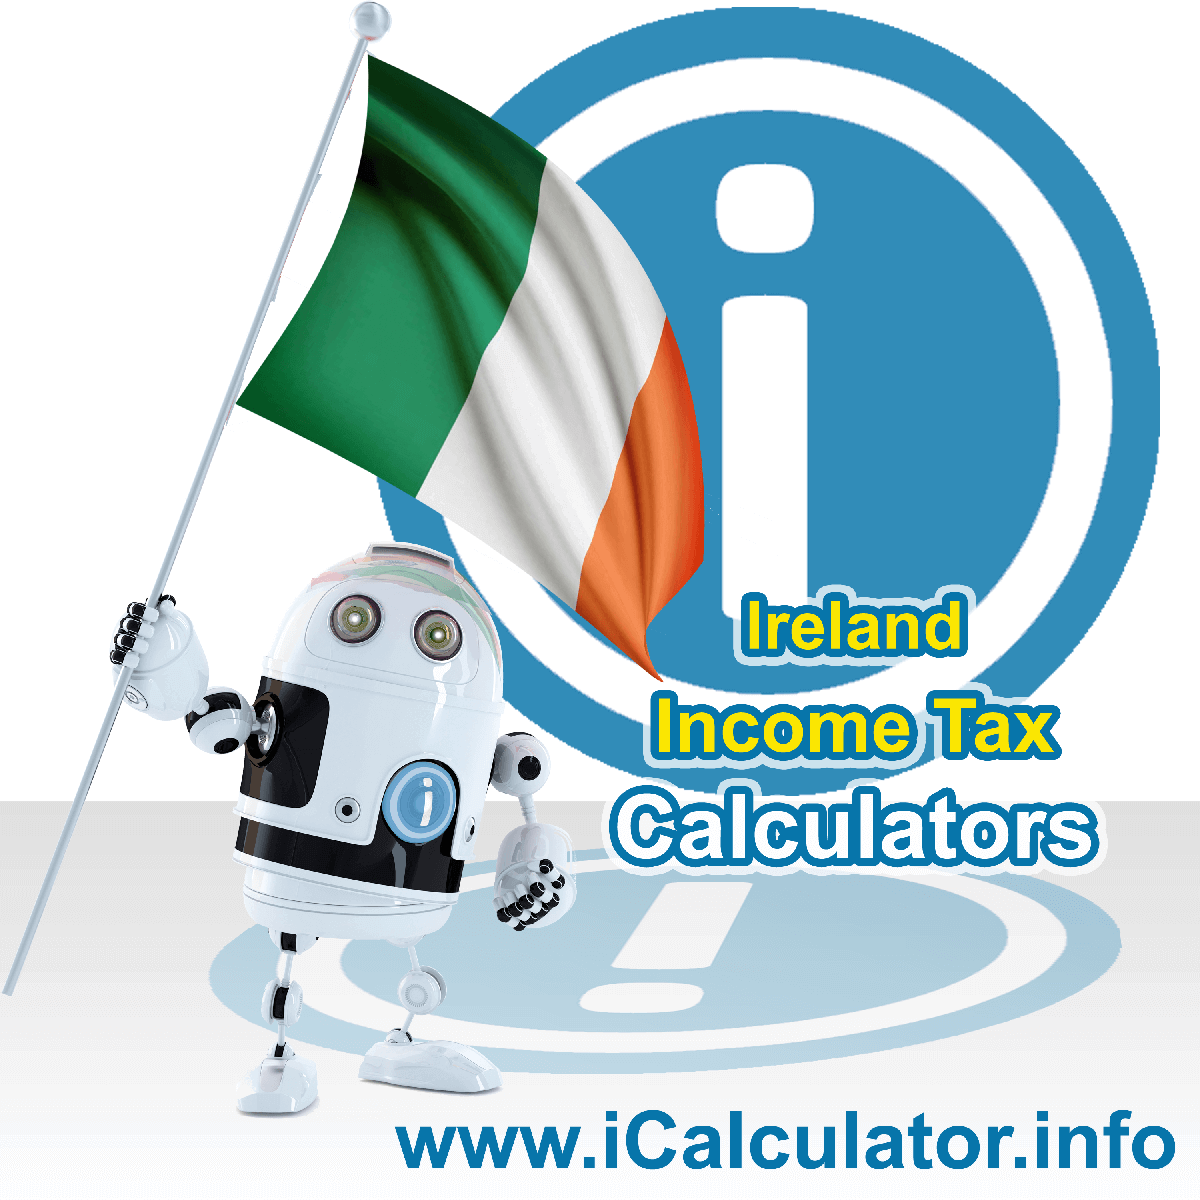 Ireland Income Tax Calculator. This image shows a new employer in Ireland calculating the annual payroll costs based on multiple payroll payments in one year in Ireland using the Ireland income tax calculator to understand their payroll costs in Ireland in 2021